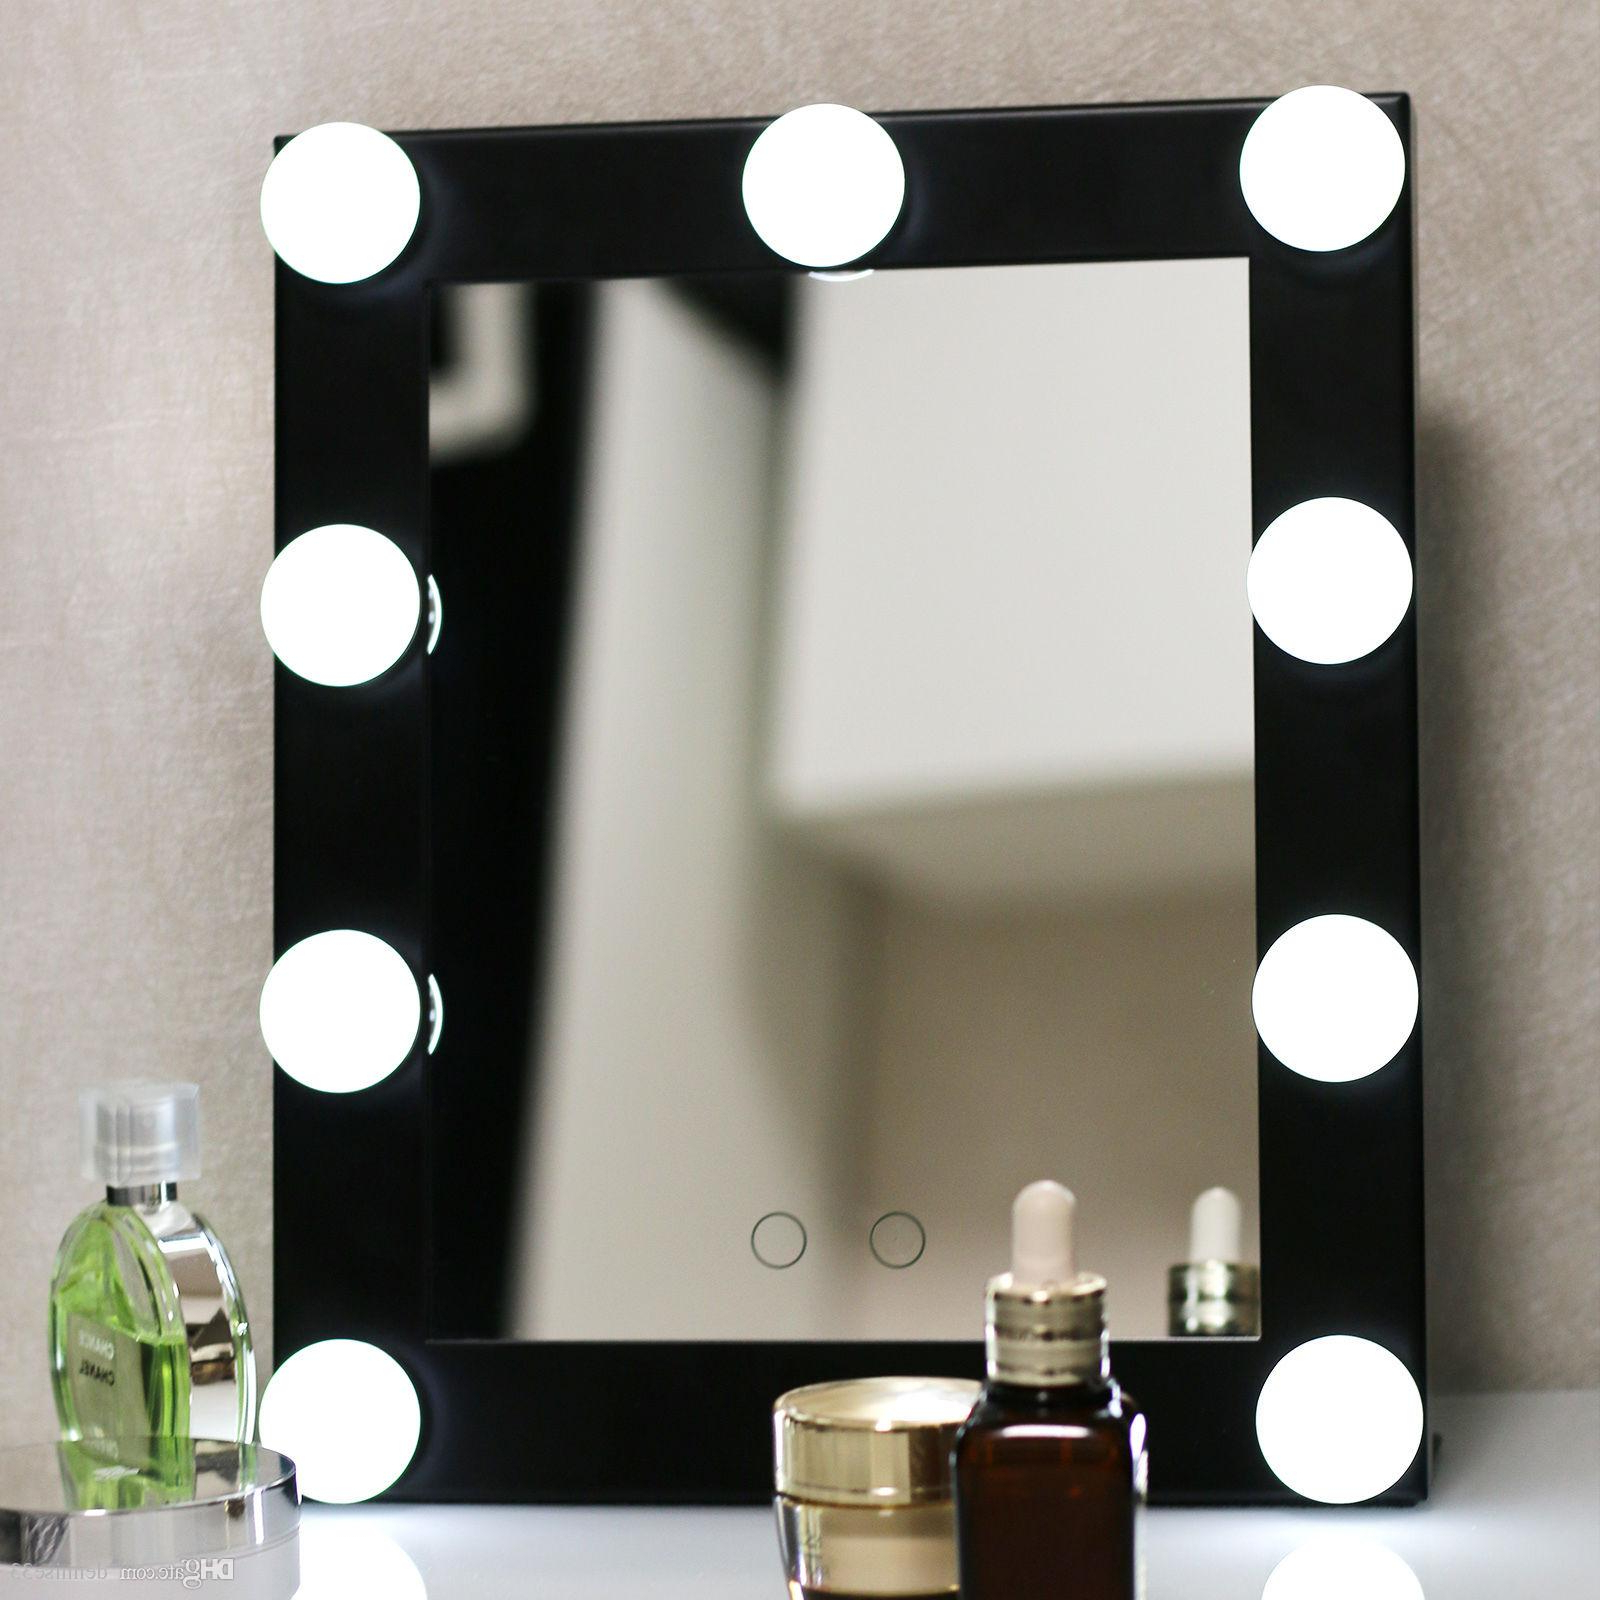 Salon Wall Mirrors In Preferred Free Shipping Hollywood Lighted Aluminum Table Desktop Wall Mounted  Cosmetic Makeup Artist Salon Vanity Girl Mirror With Lights Bulbs Around (View 14 of 20)